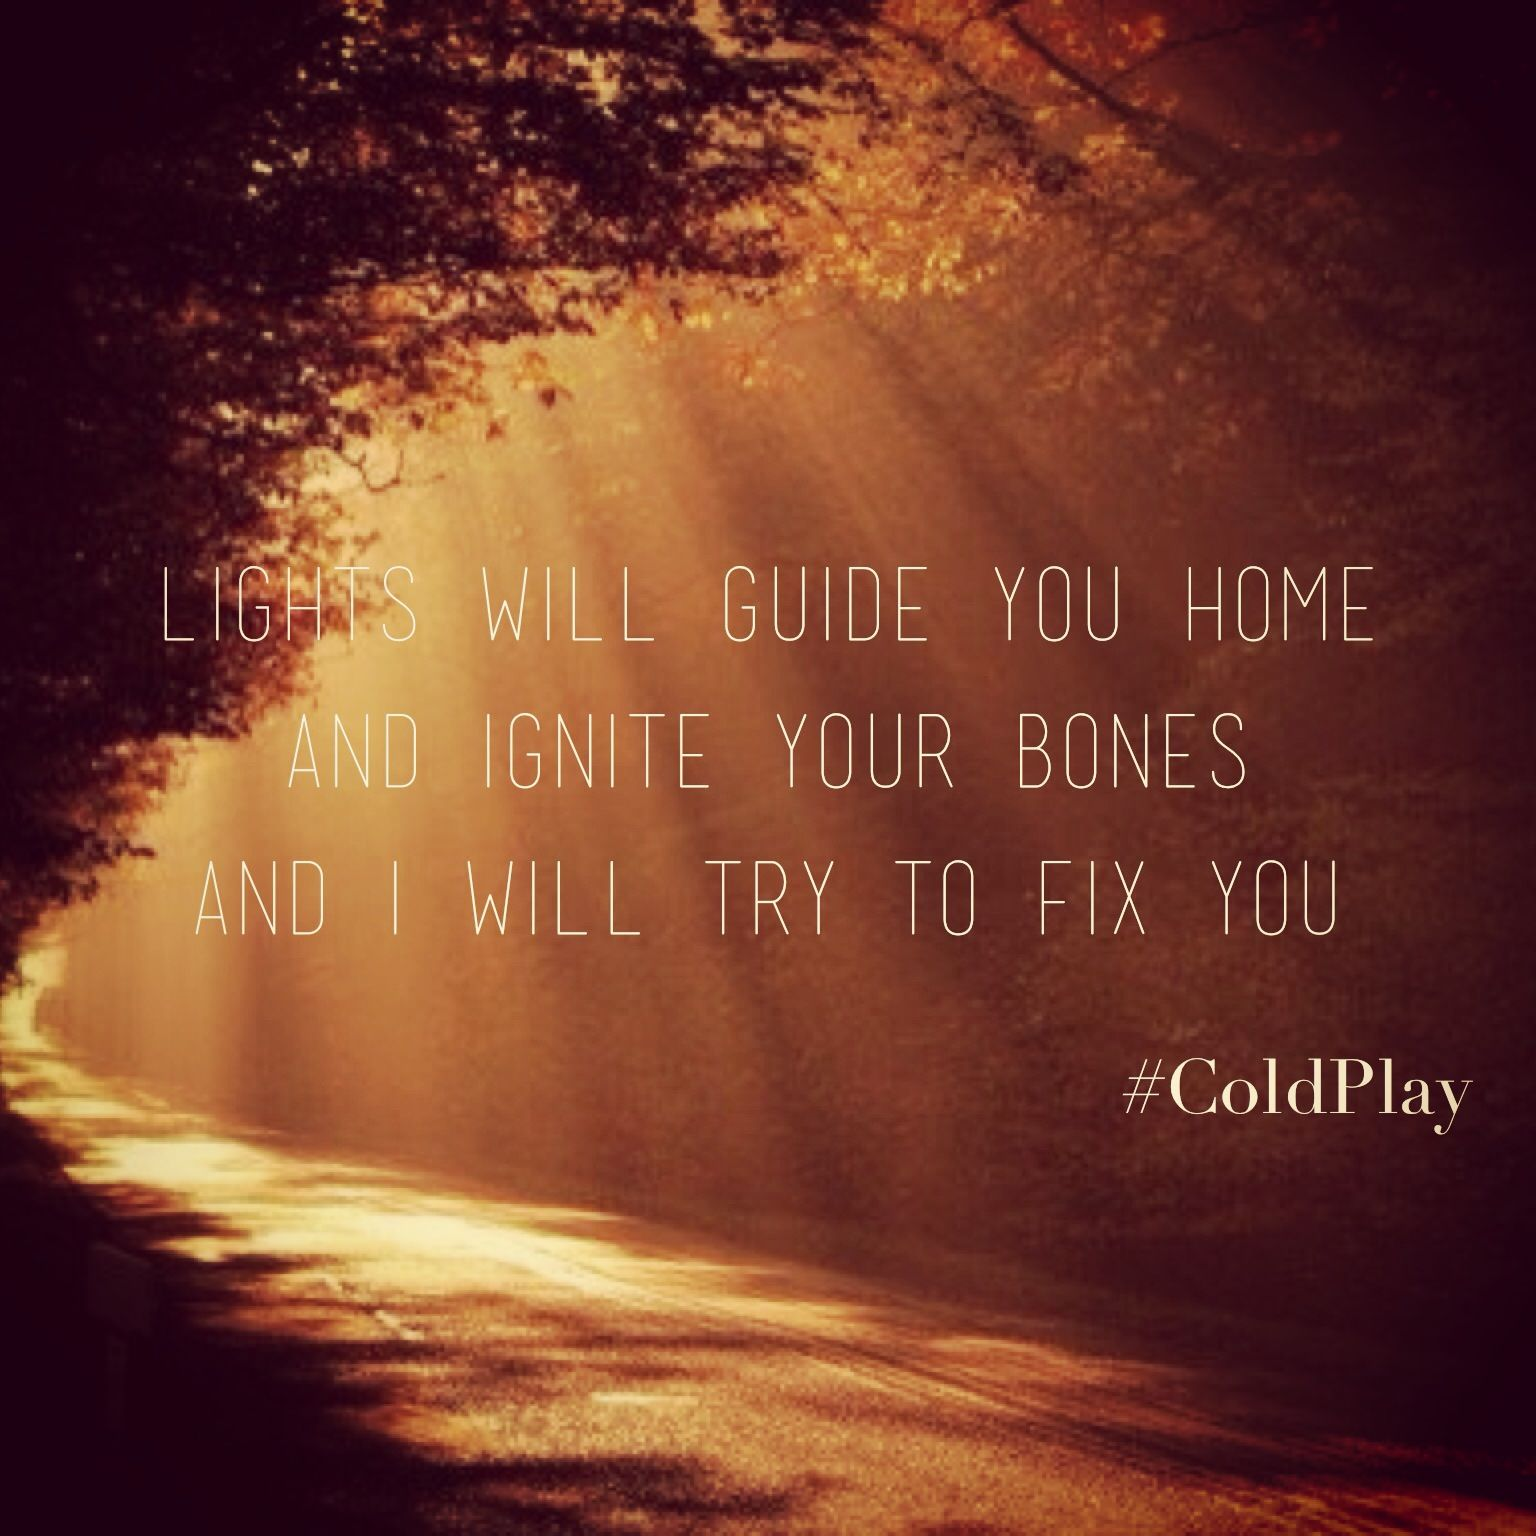 Fix you Coldplay Has one of the greatest lyrics. (With